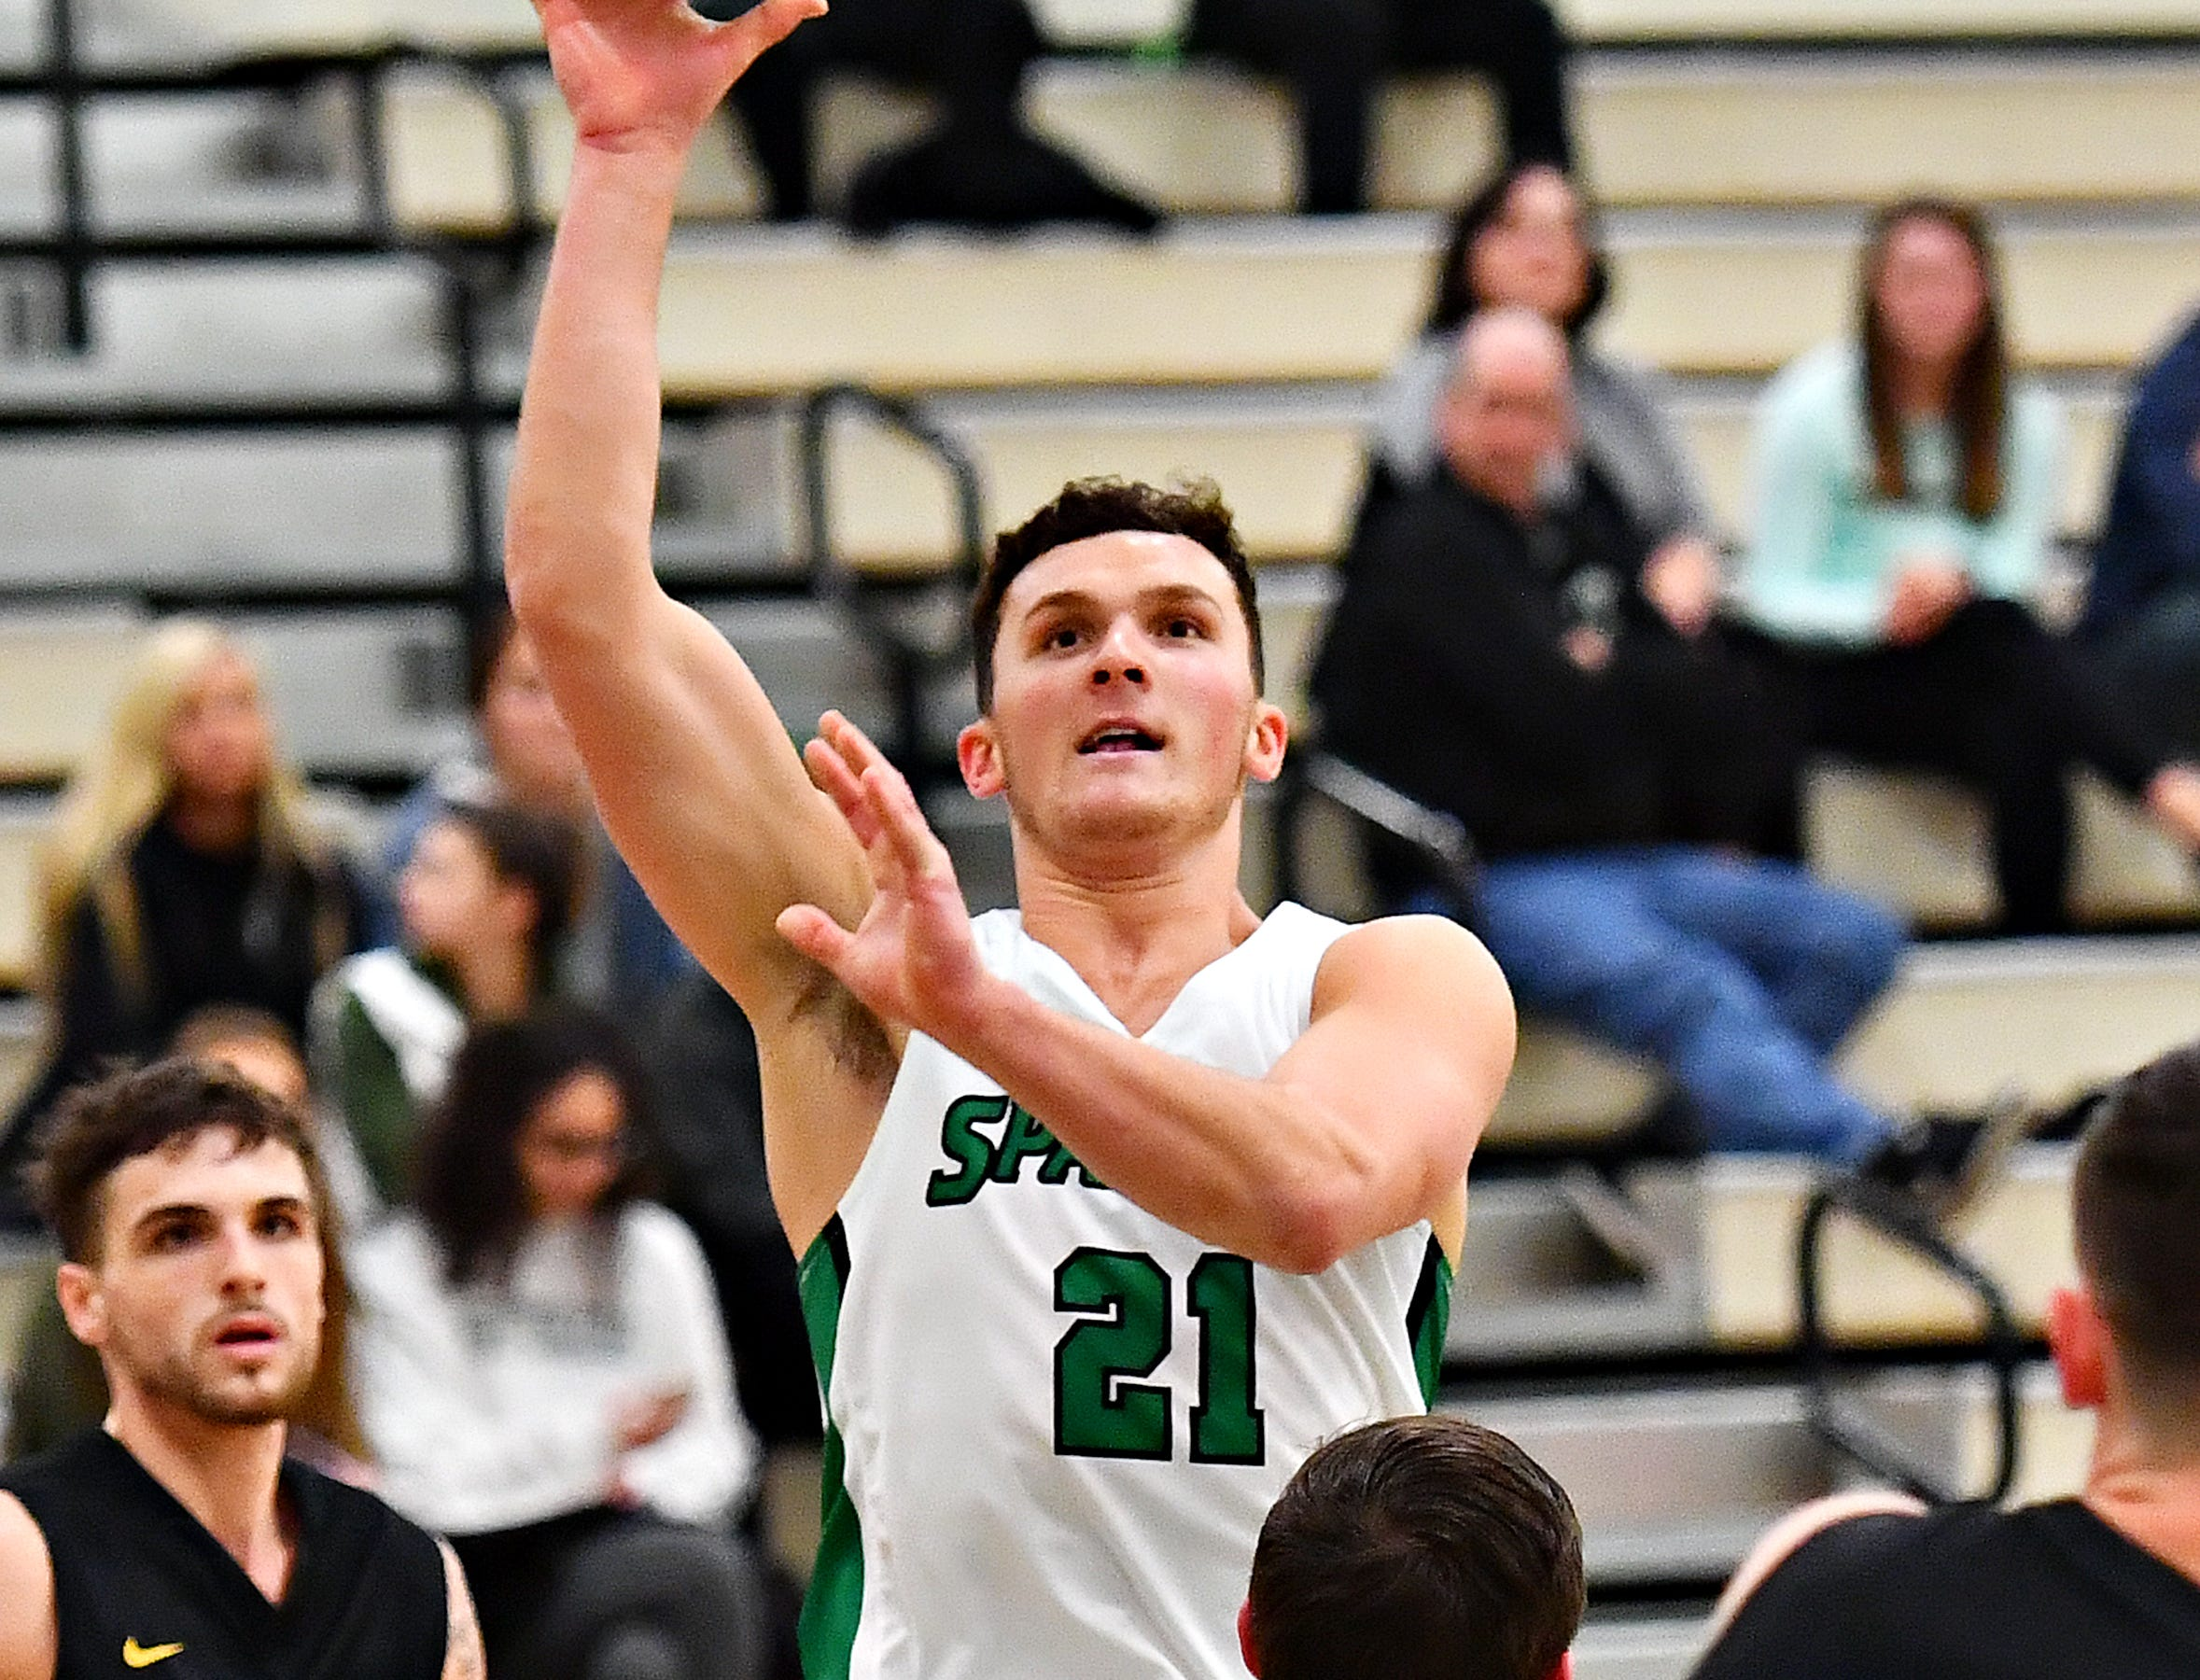 York College vs Gwynedd-Mercy during men's basketball action at Grumbacher Sport and Fitness Center in Spring Garden Township, Wednesday, Nov. 28, 2018. Dawn J. Sagert photo